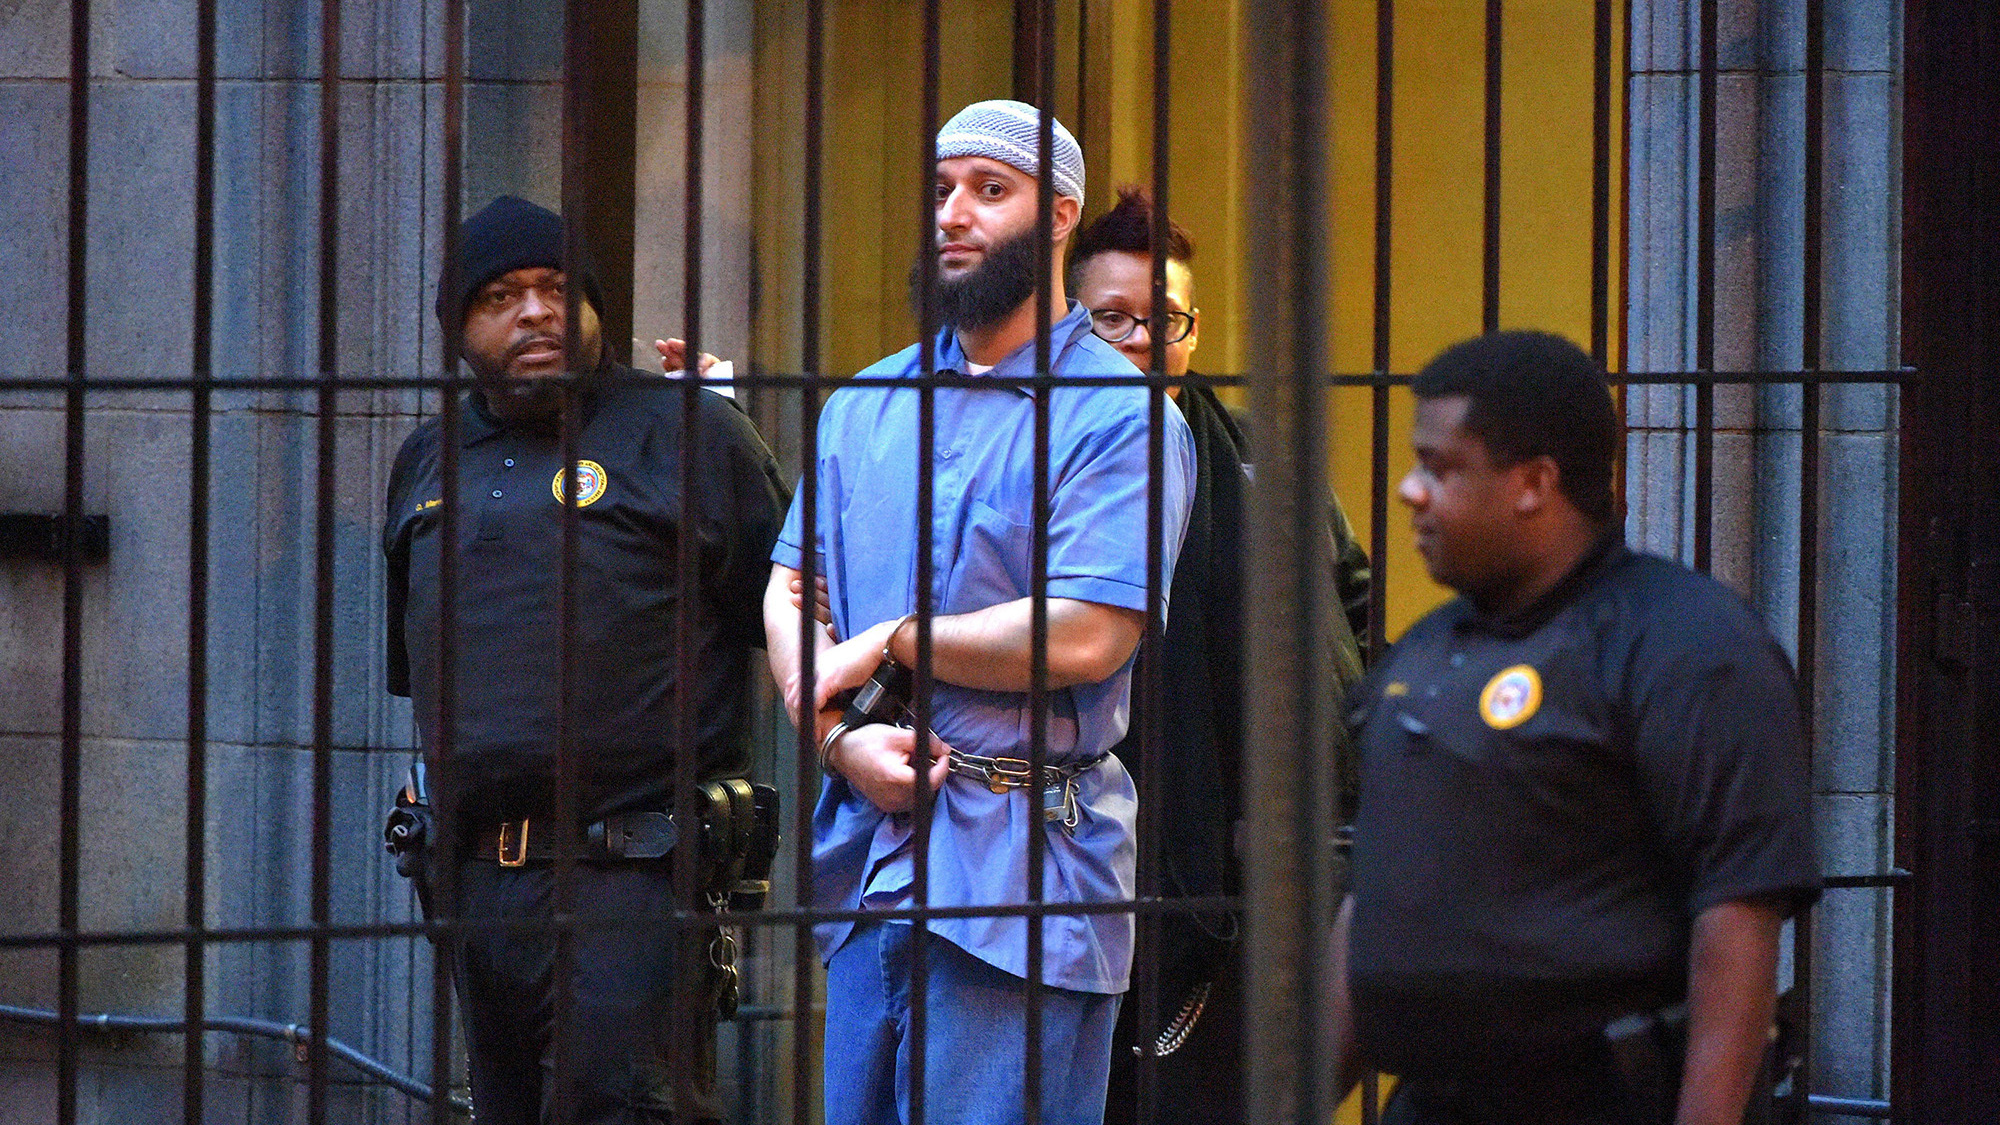 U.S. Supreme Court Won't Hear Adnan Syed's Appeal, Keeping 'Serial' Subject In Prison